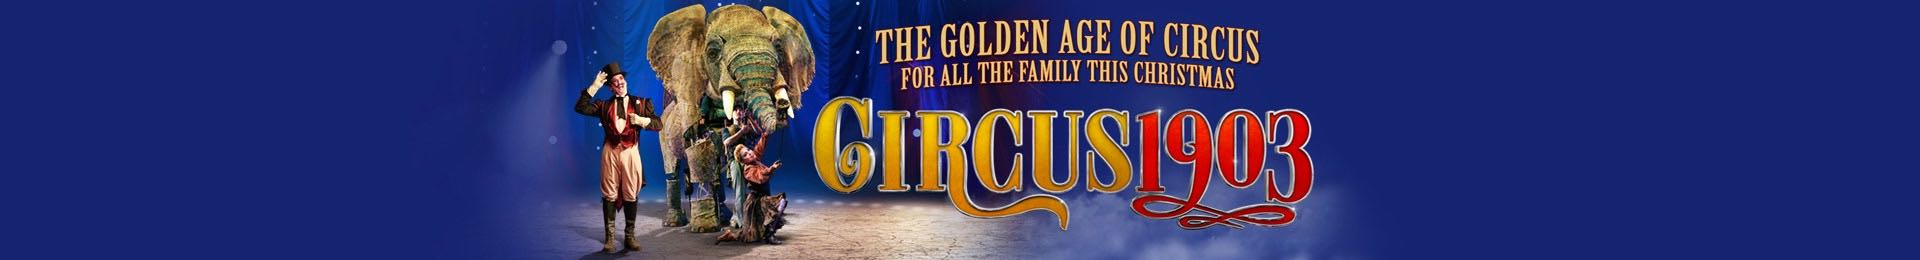 Circus 1903 at the Royal Festival Hall Tickets